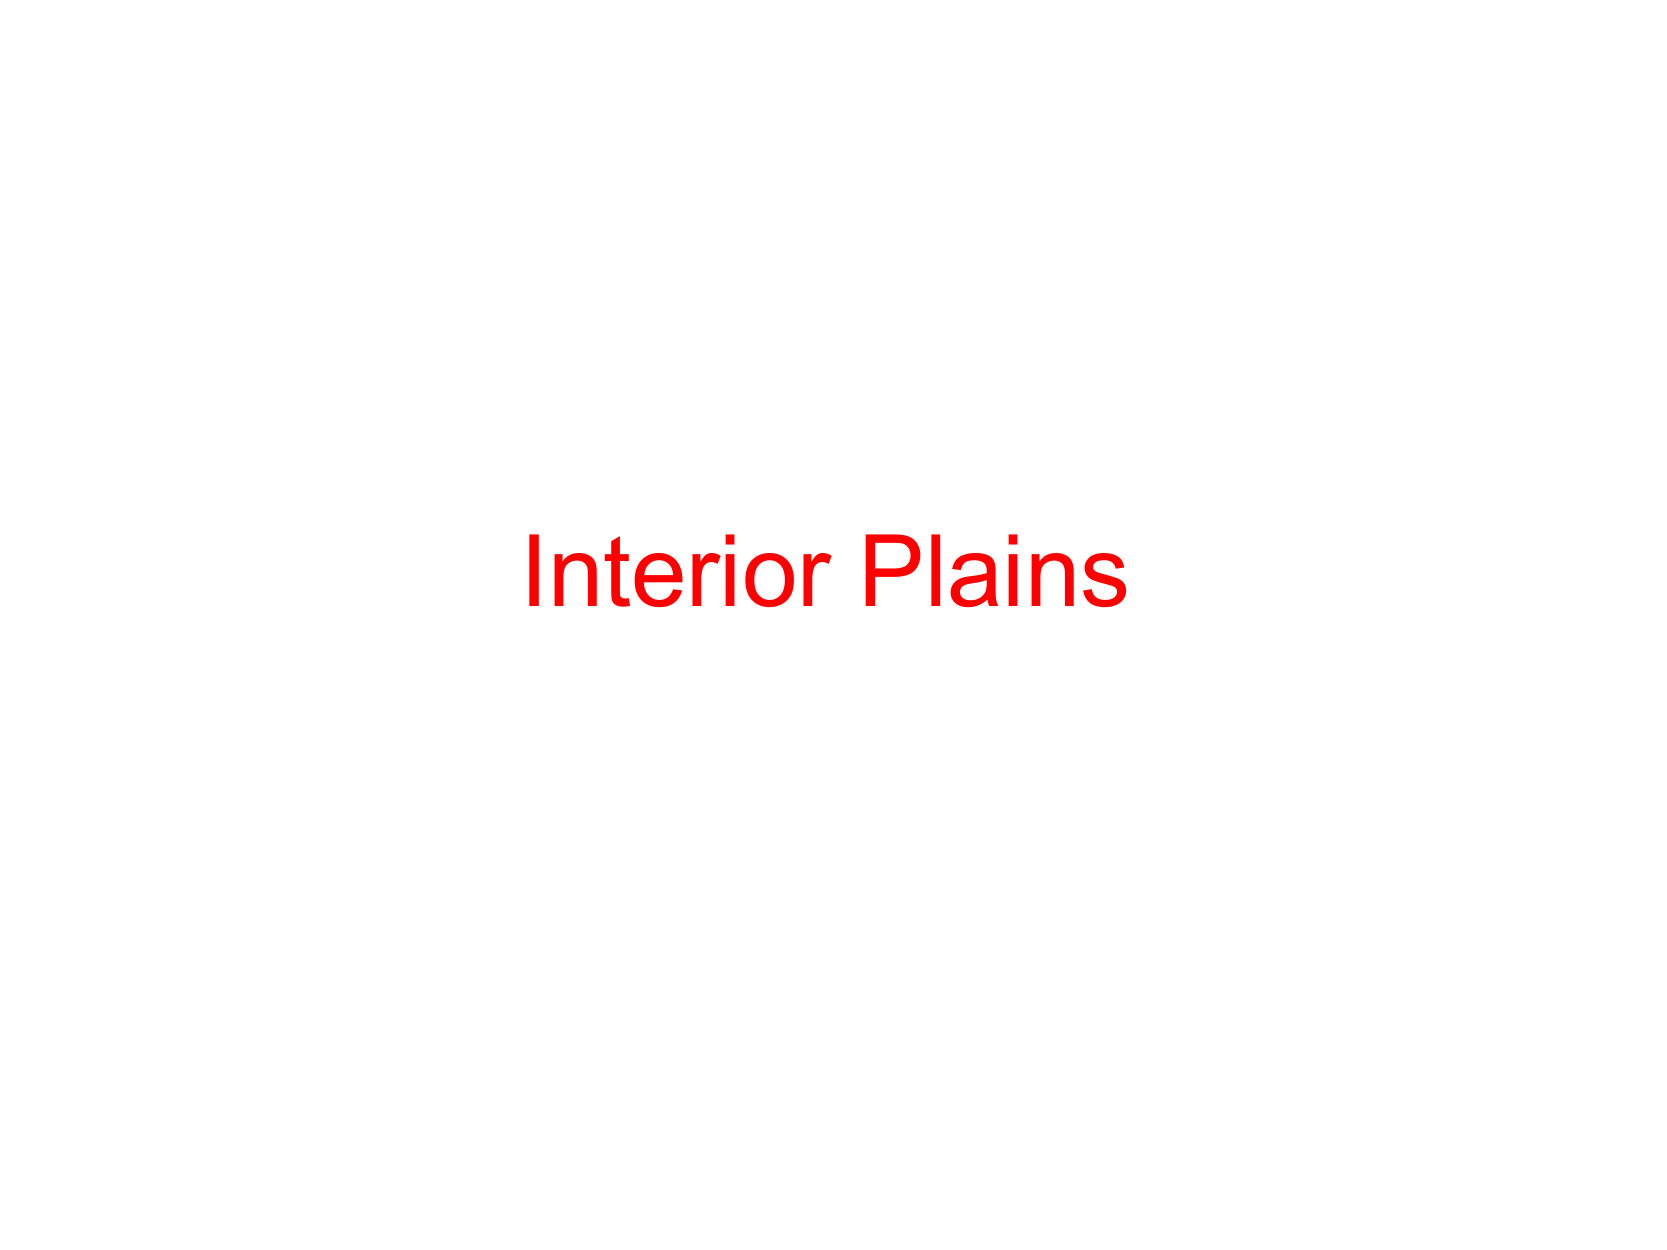 Grade 5 Regions Project Interior Plains Resource Preview